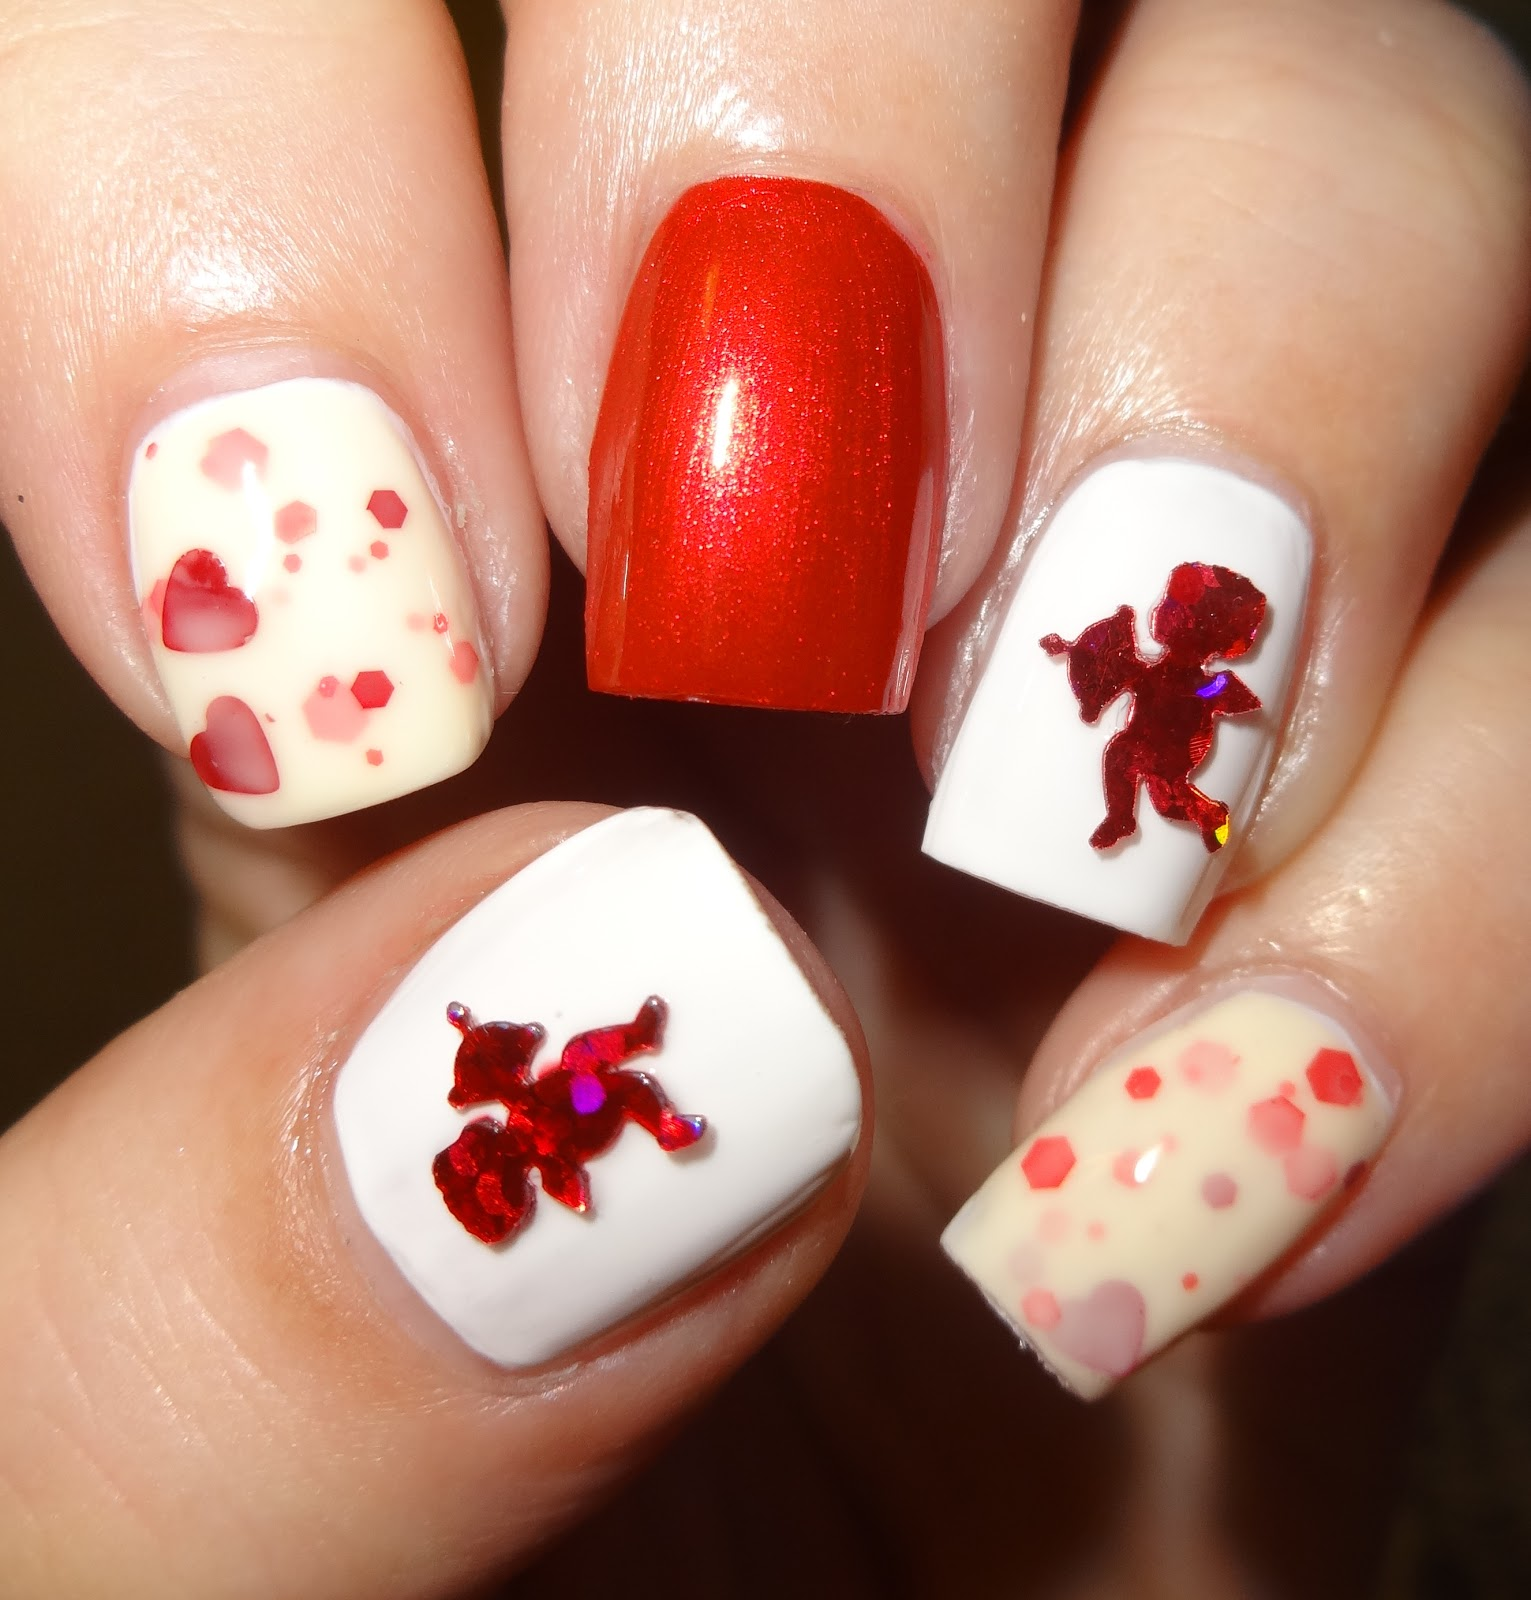 Wendys delights cupid nail art decals from charlies nail art the cupid nail art decals currently cost 099 for a pack of 100 and come in red or black available at charlies nail art who have an huge range of nail prinsesfo Choice Image